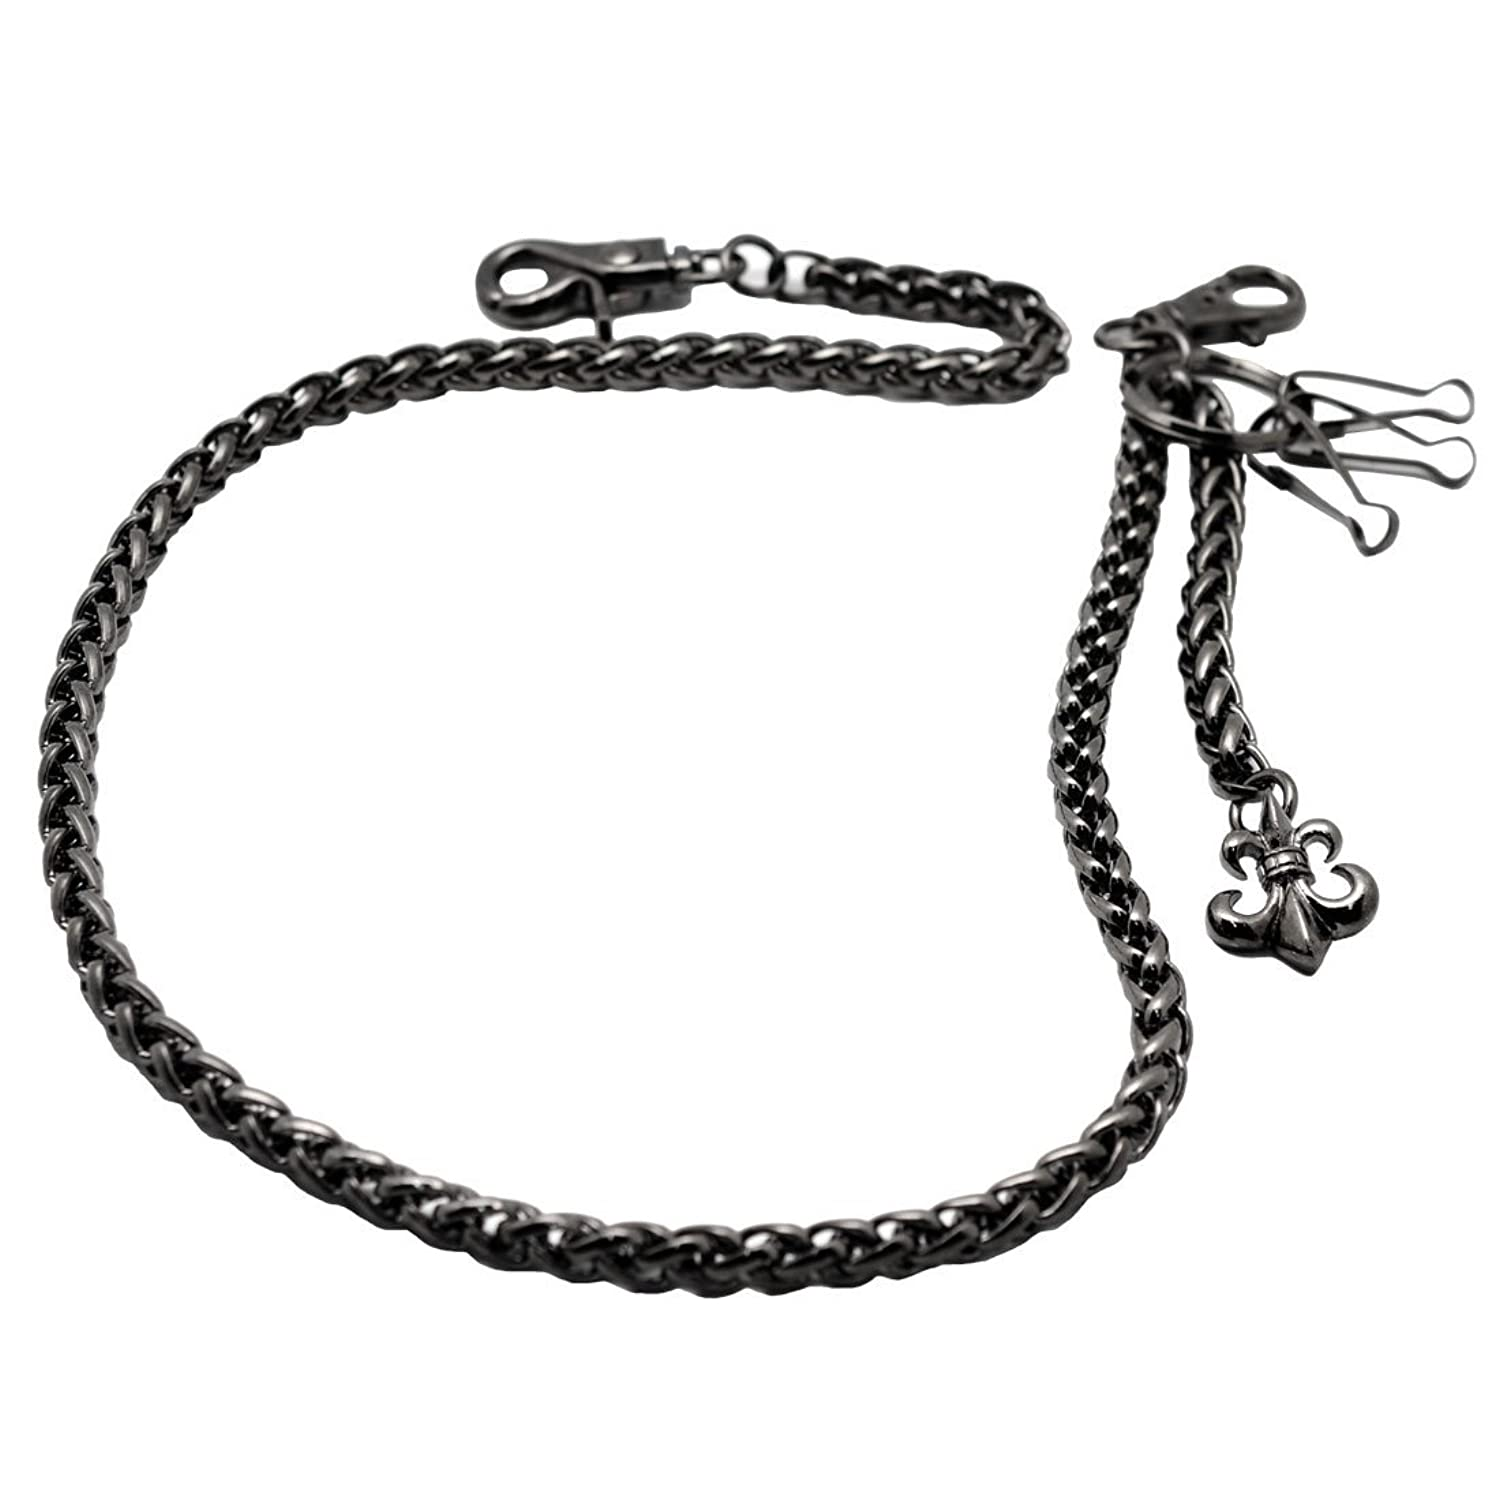 Accessories Uniqsum Simple Rope shape Double wallet chain Biker Punk Jean Key chain Gun-Metal Men